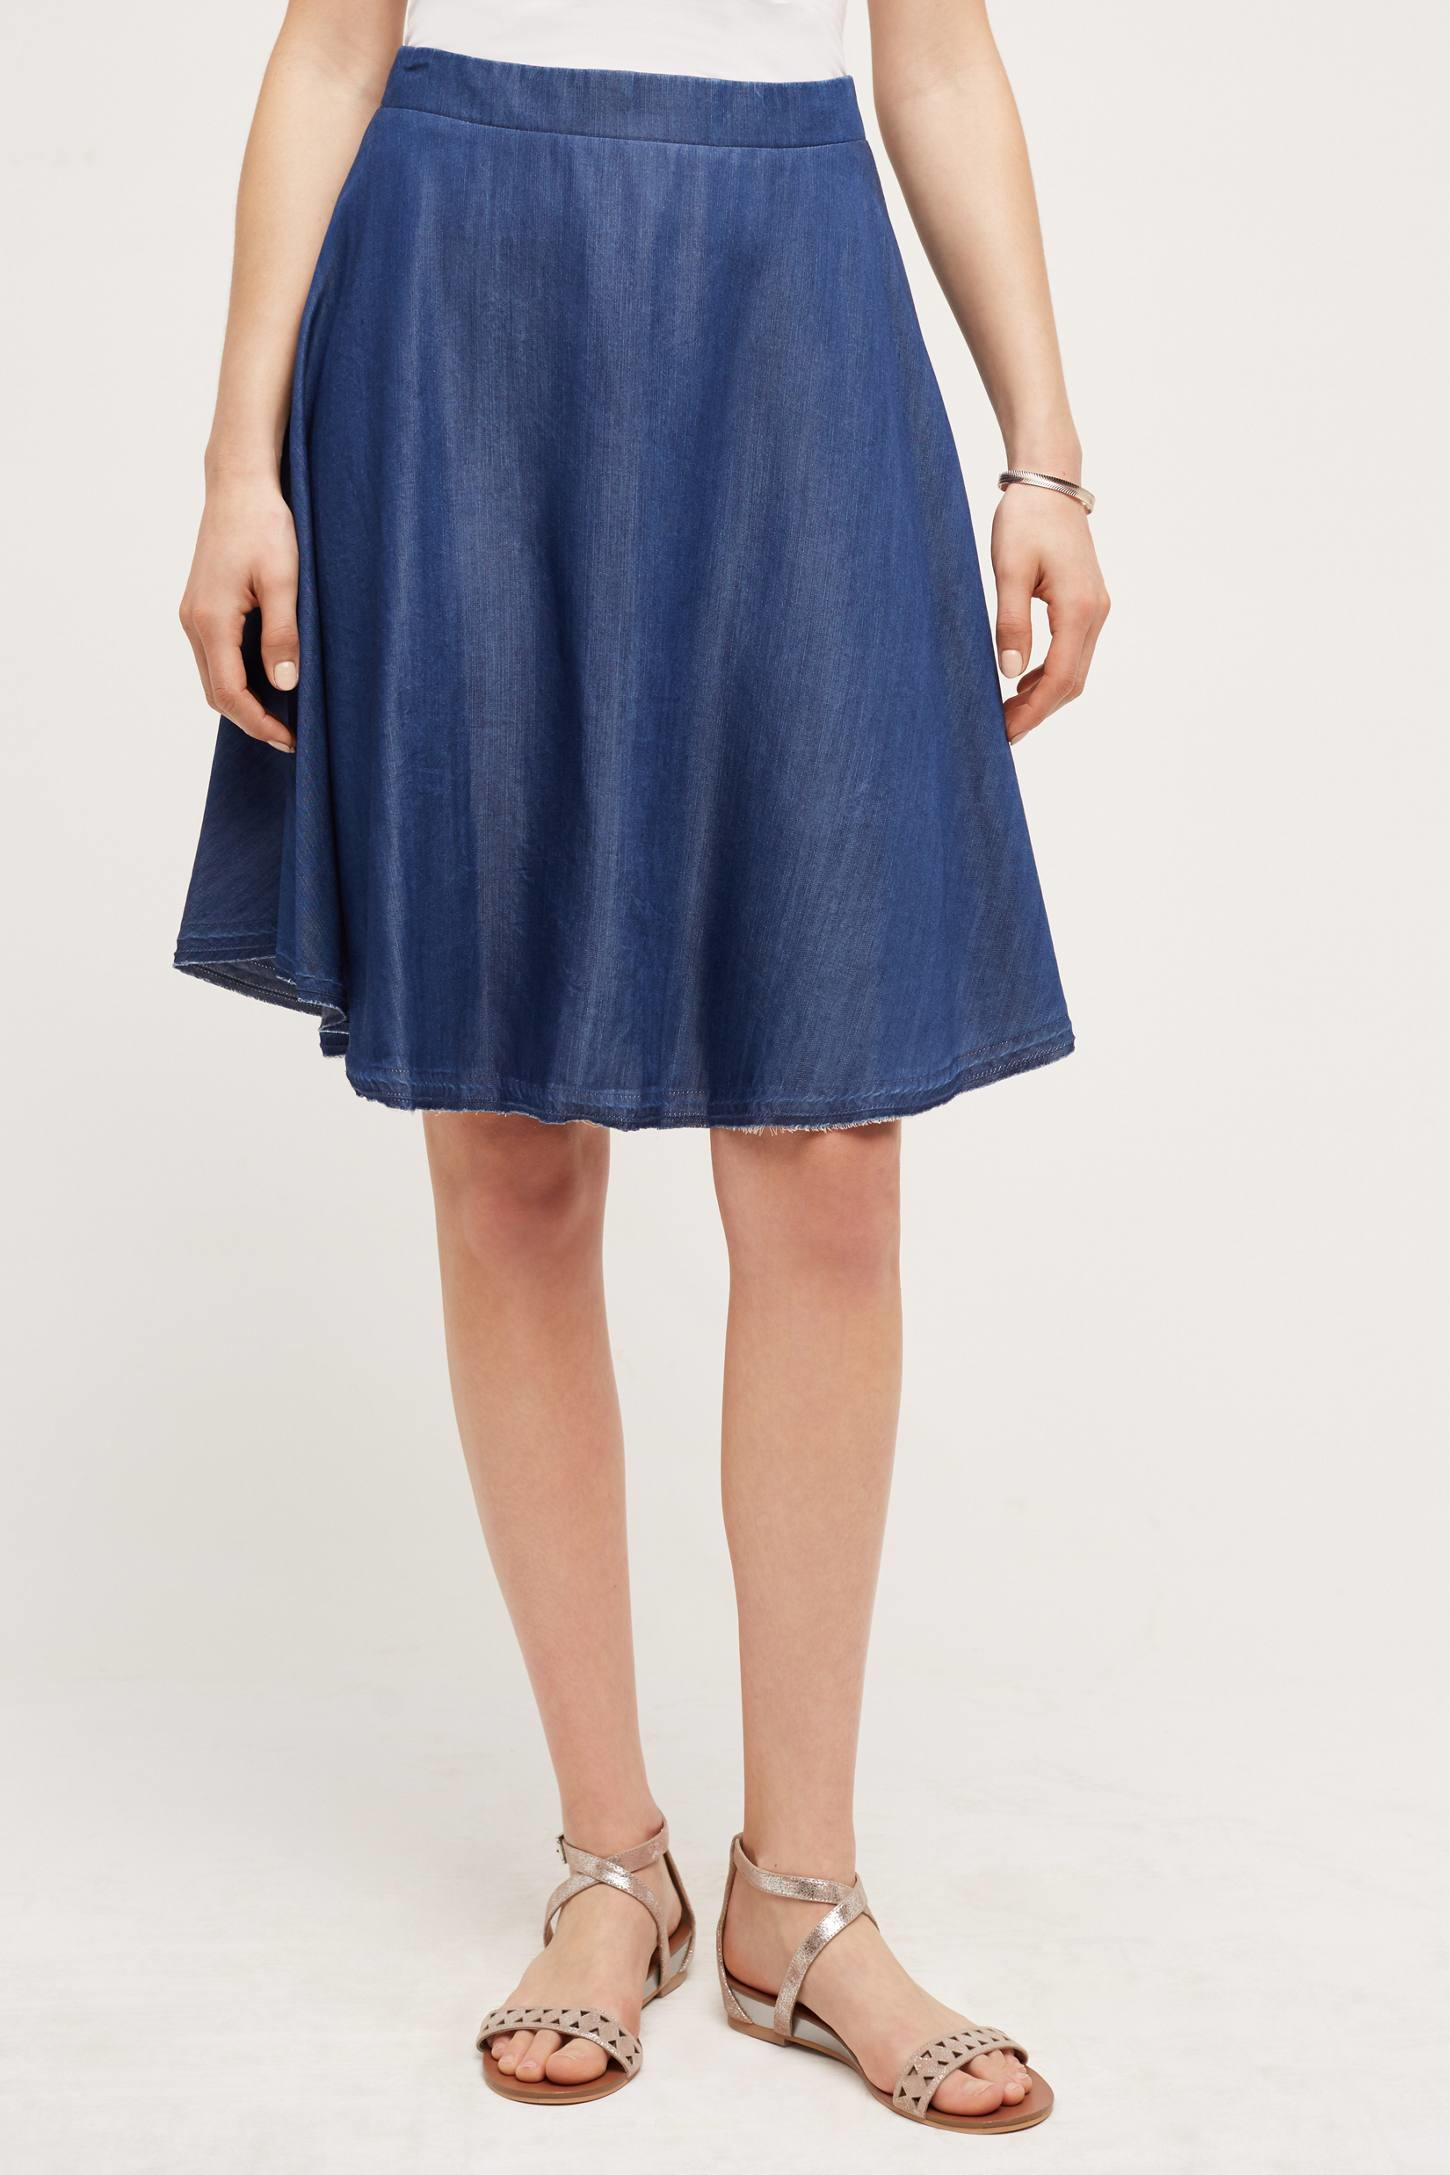 Jean Circle Skirt - Dress Ala